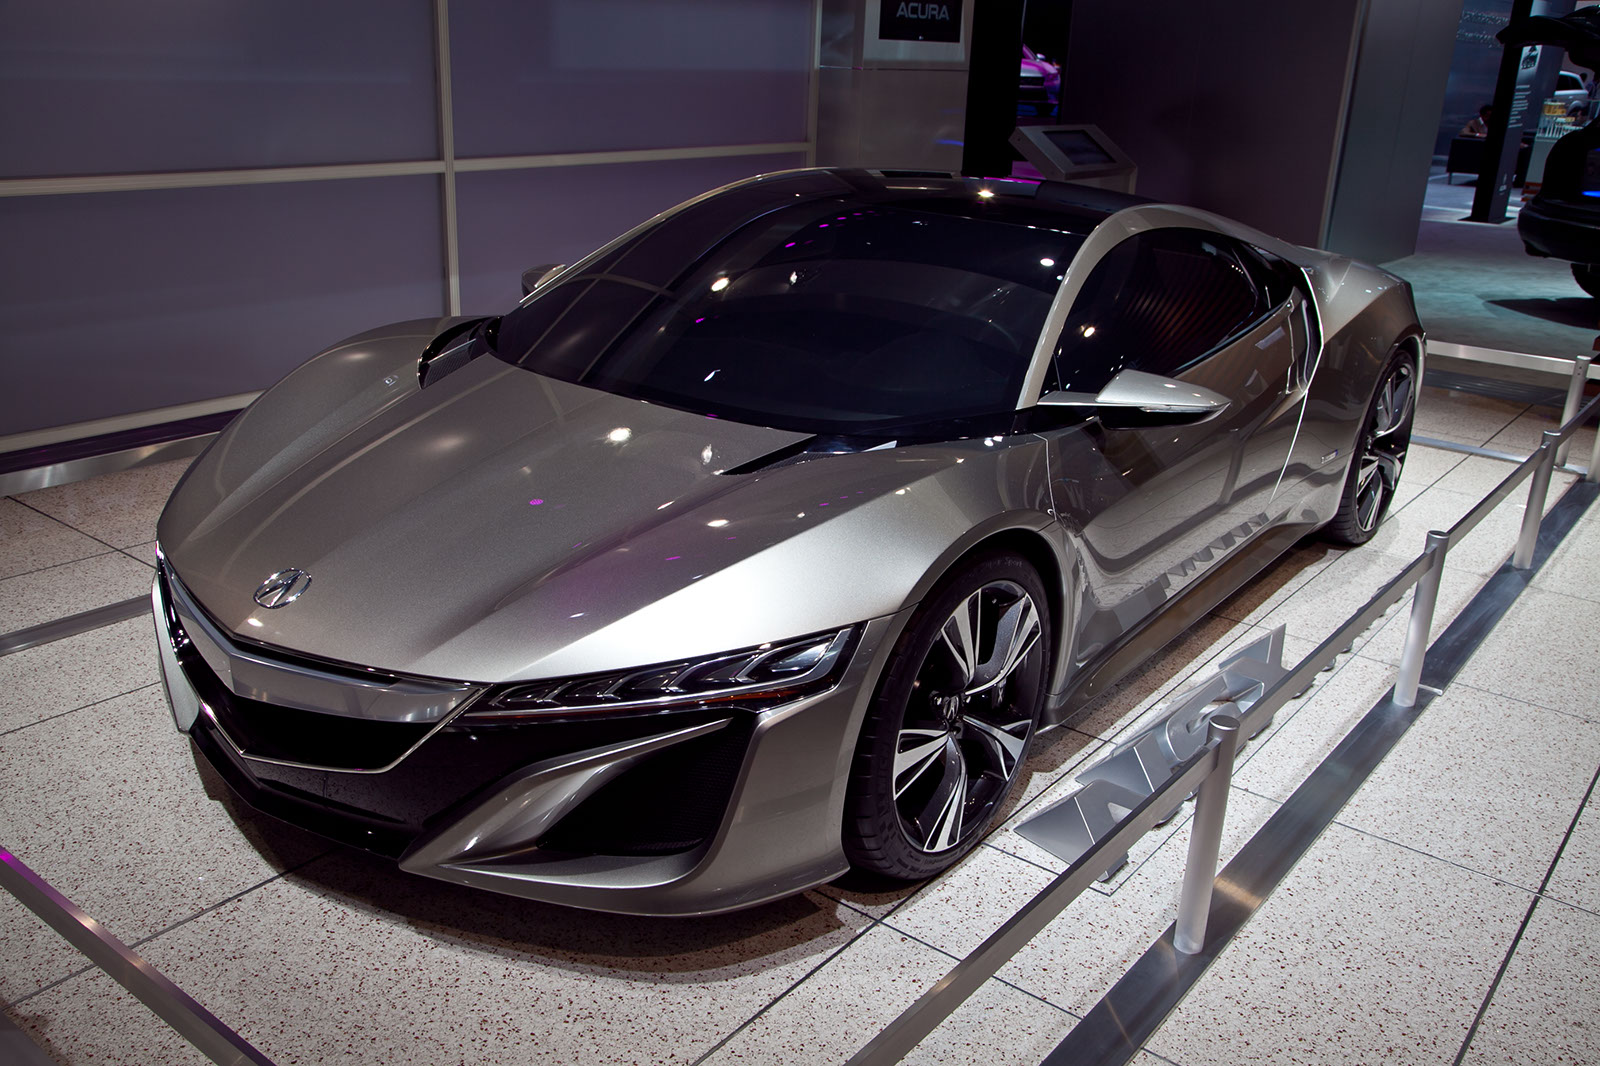 2012 Acura NSX Concept Gallery 448725 | Top Speed